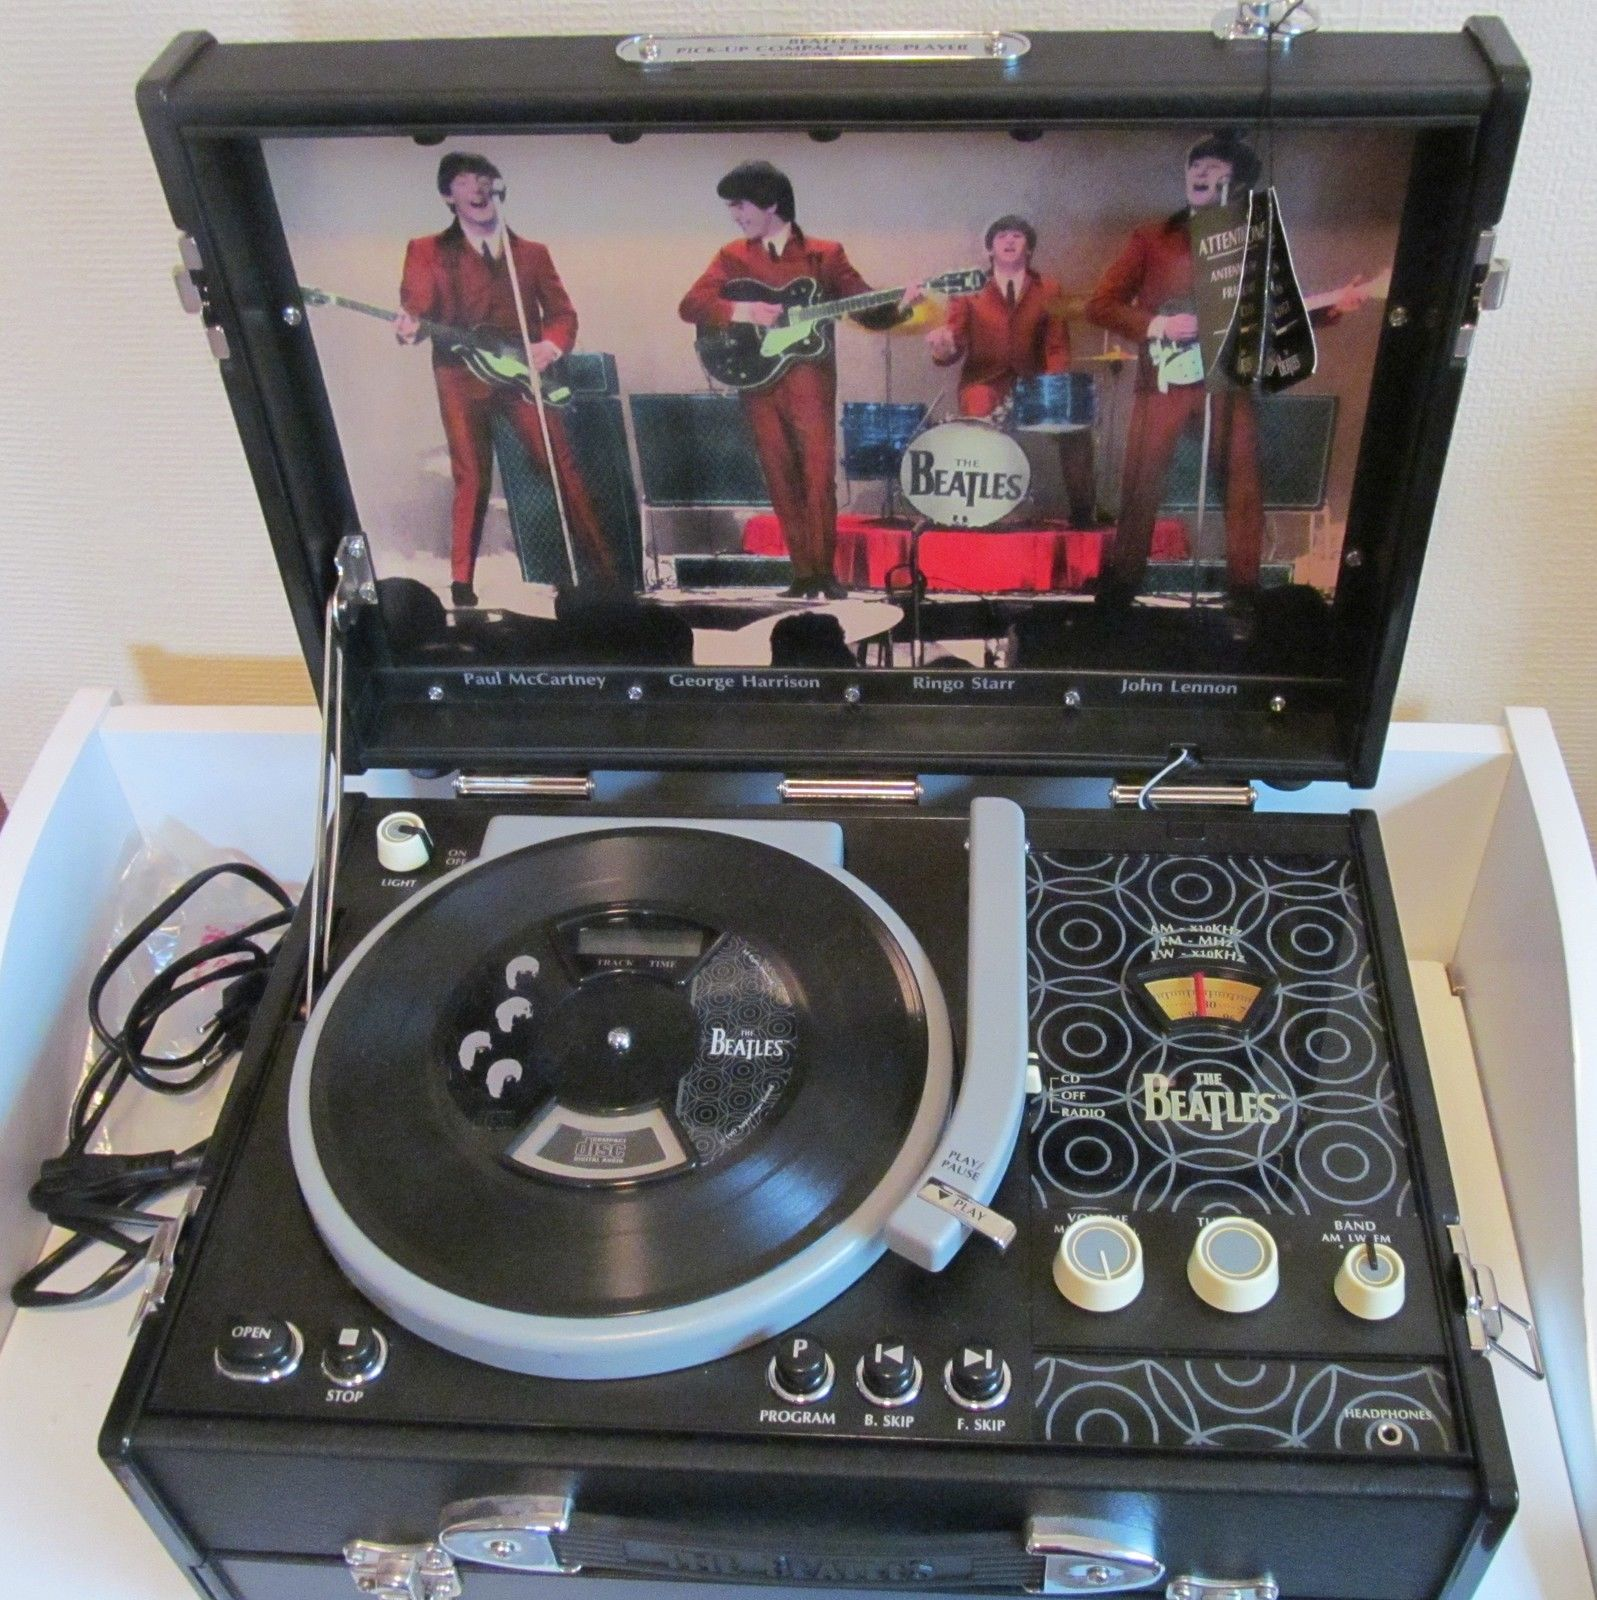 The Daily Beatle The Beatles Pick Up Cd Player And Radio